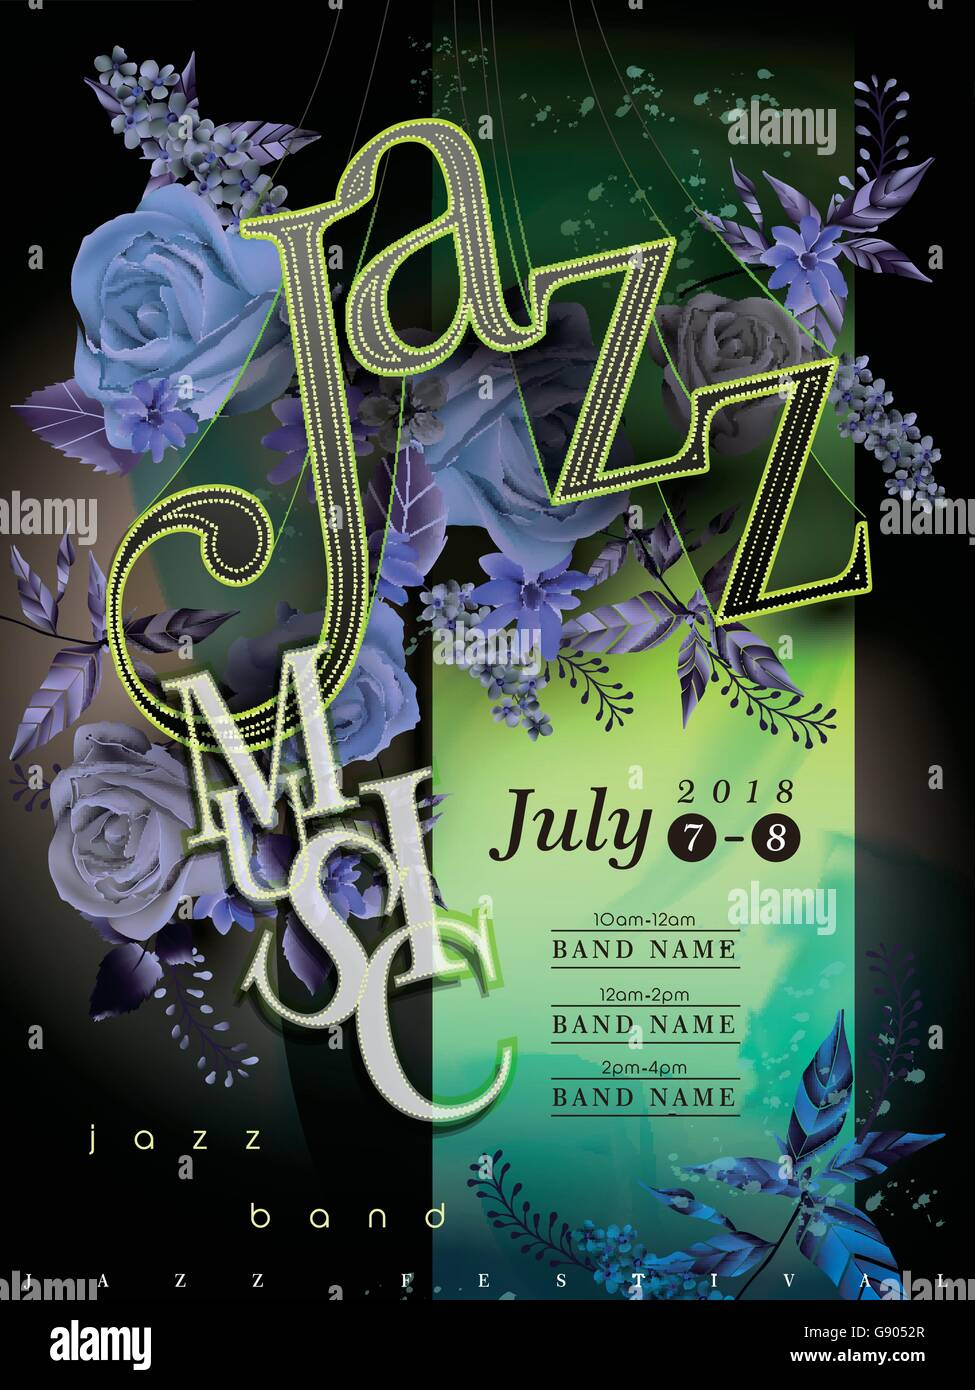 jazz festival poster template design with floral elements - Stock Vector